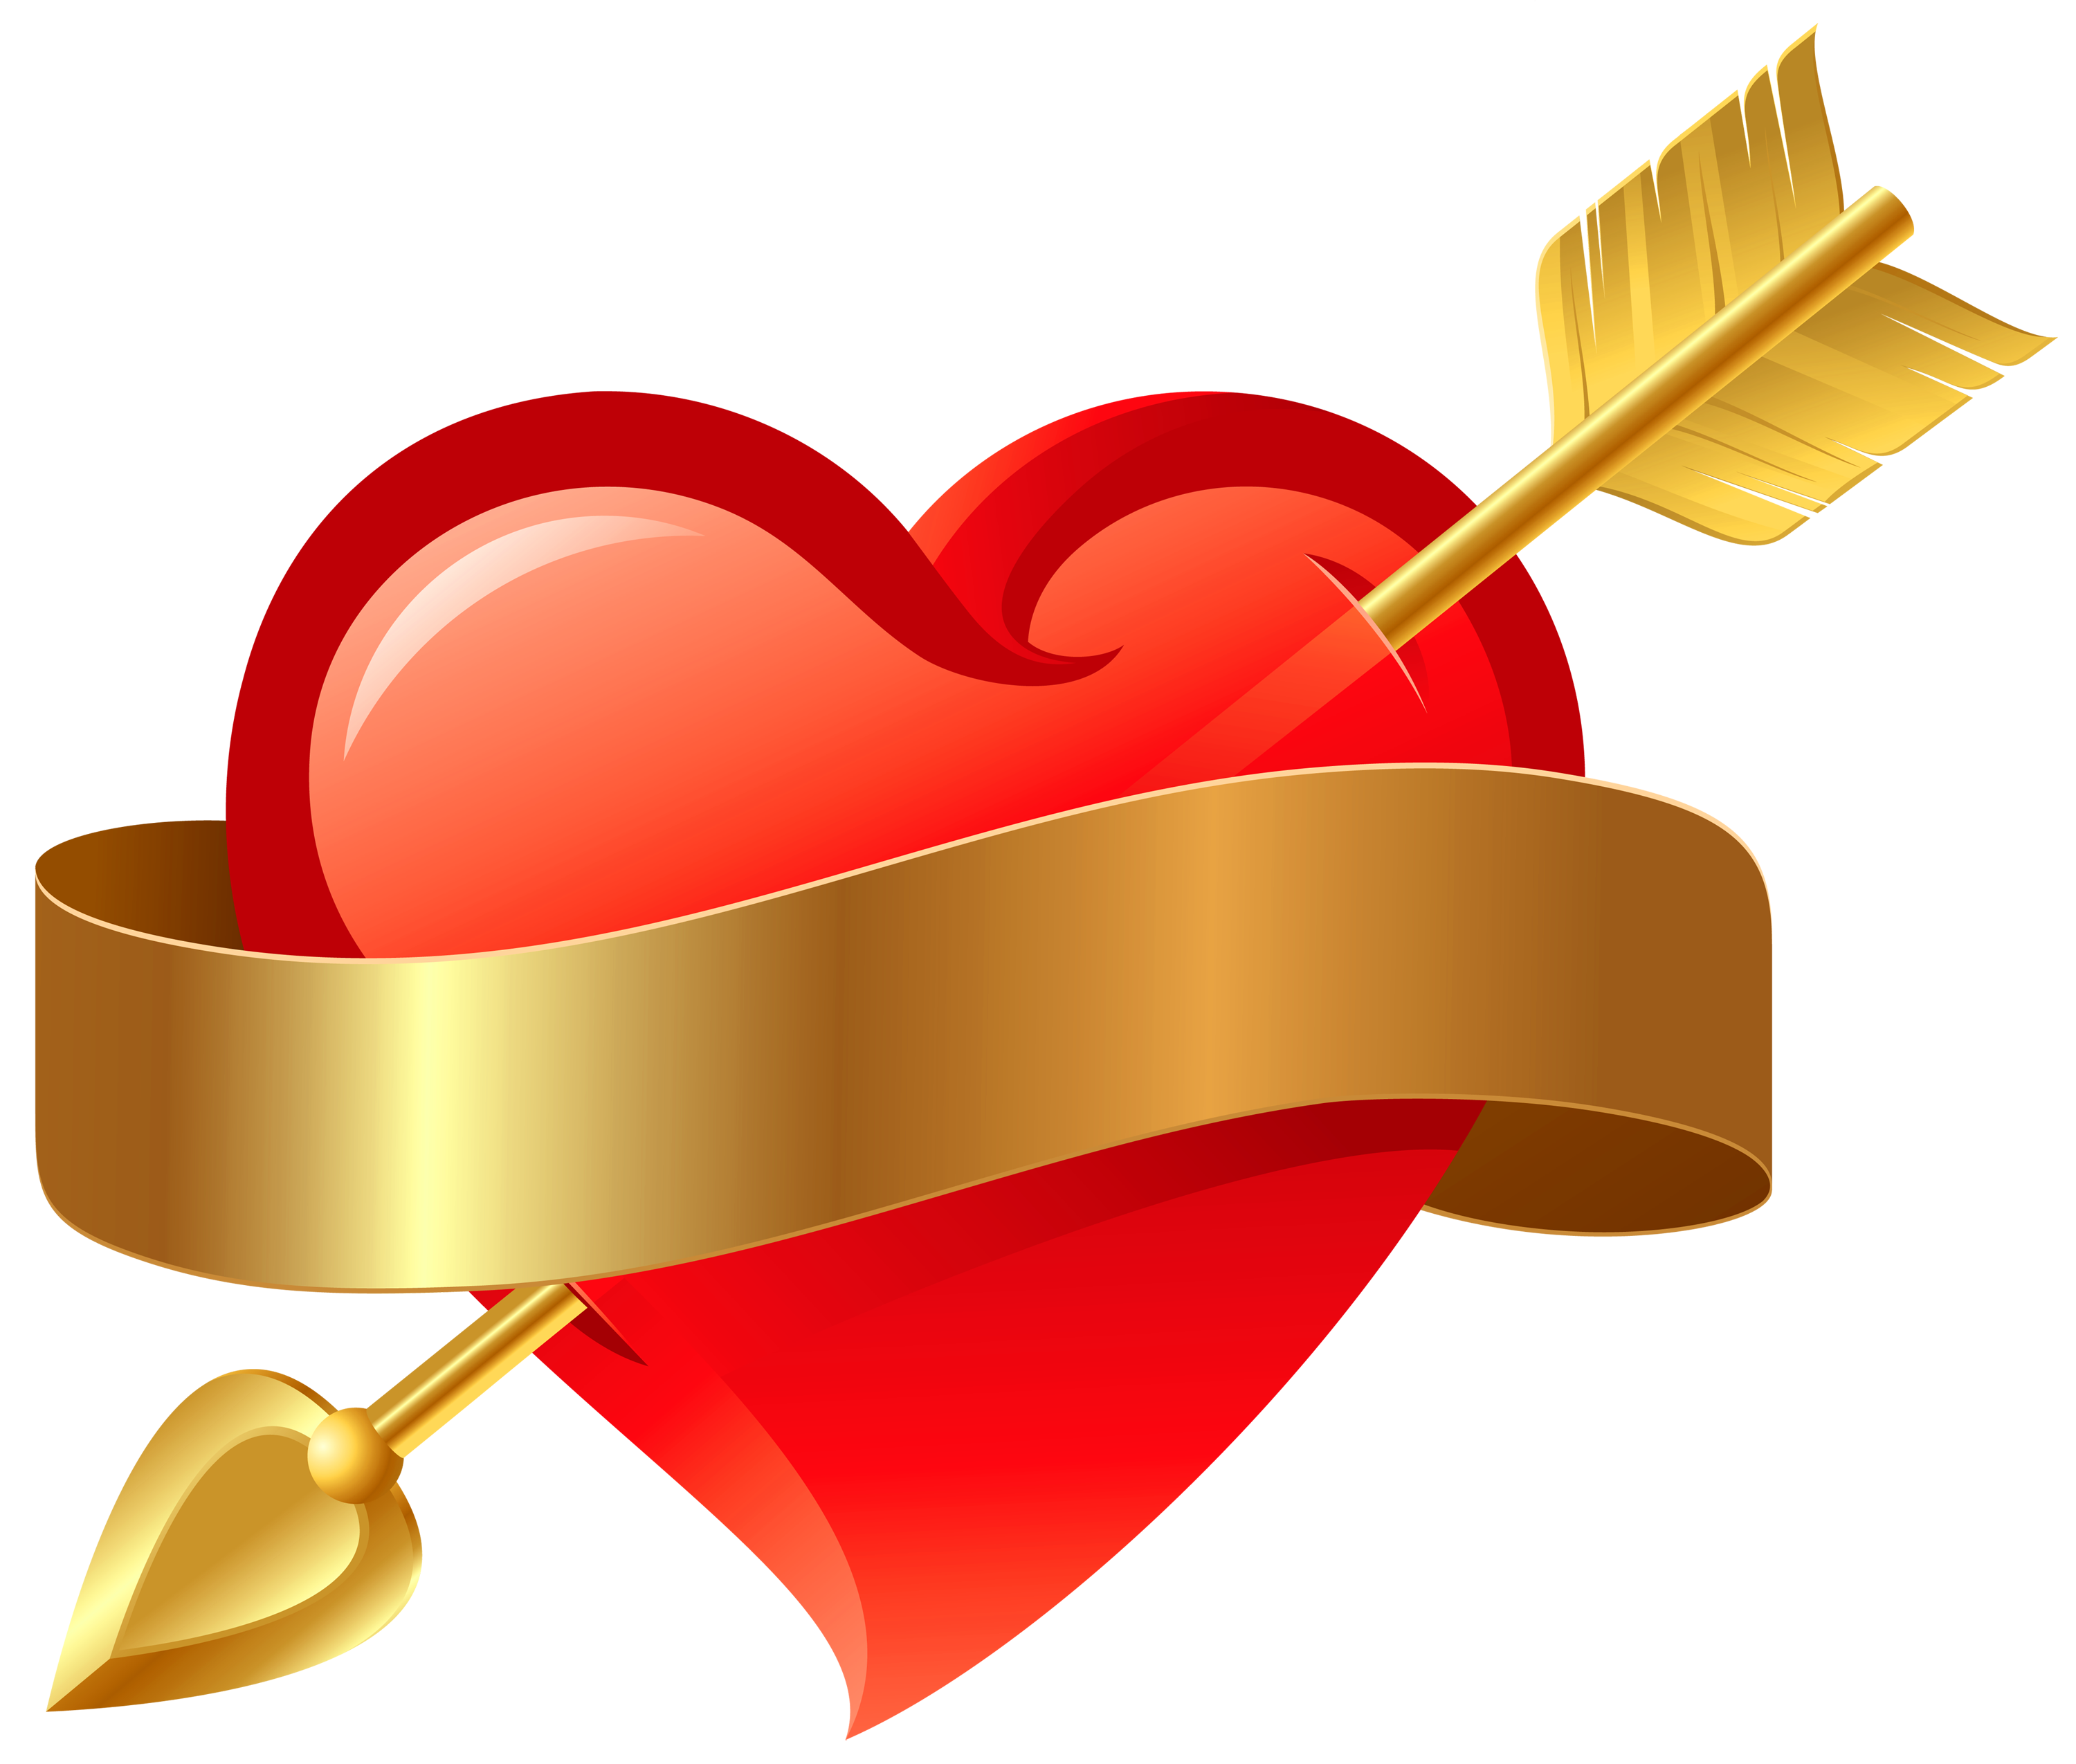 Minecraft clipart minecraft heart. Red with arrow png